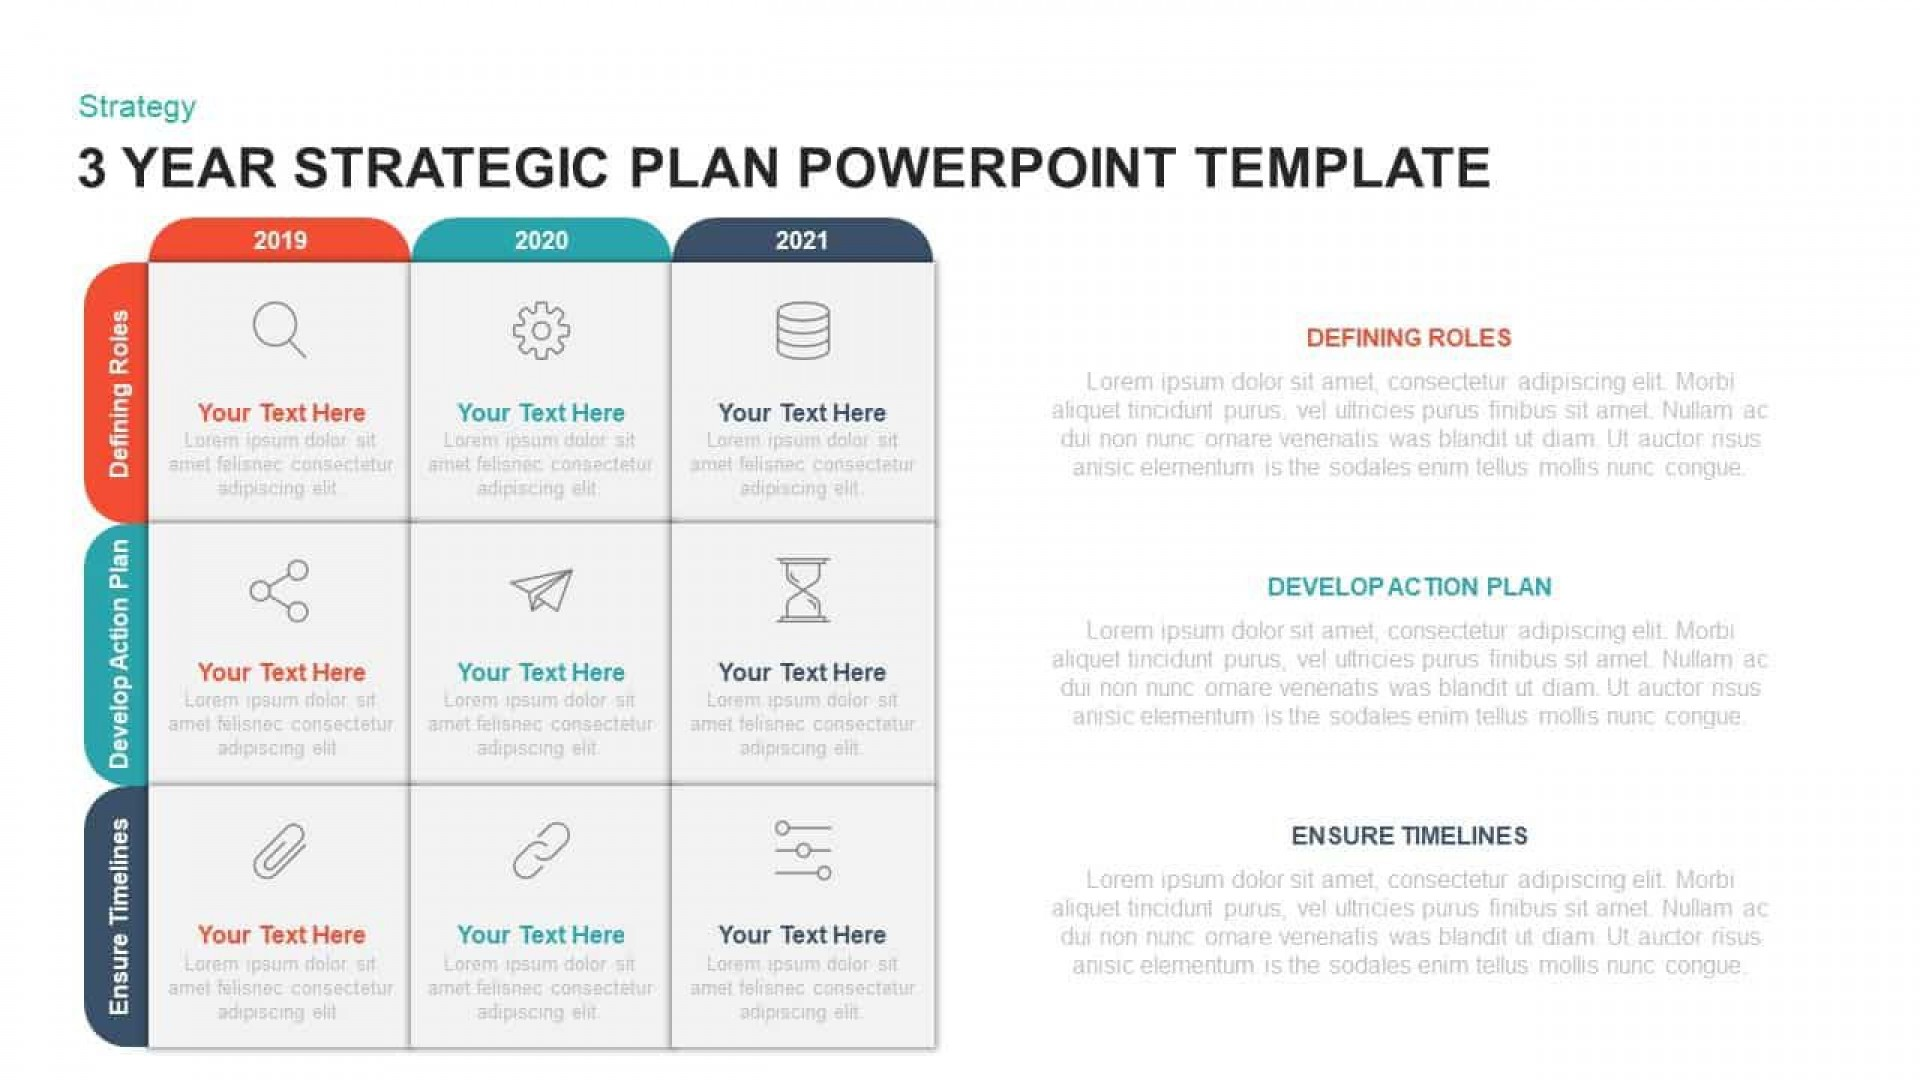 007 Formidable Strategic Plan Template Free Image  Sale Account Excel1920